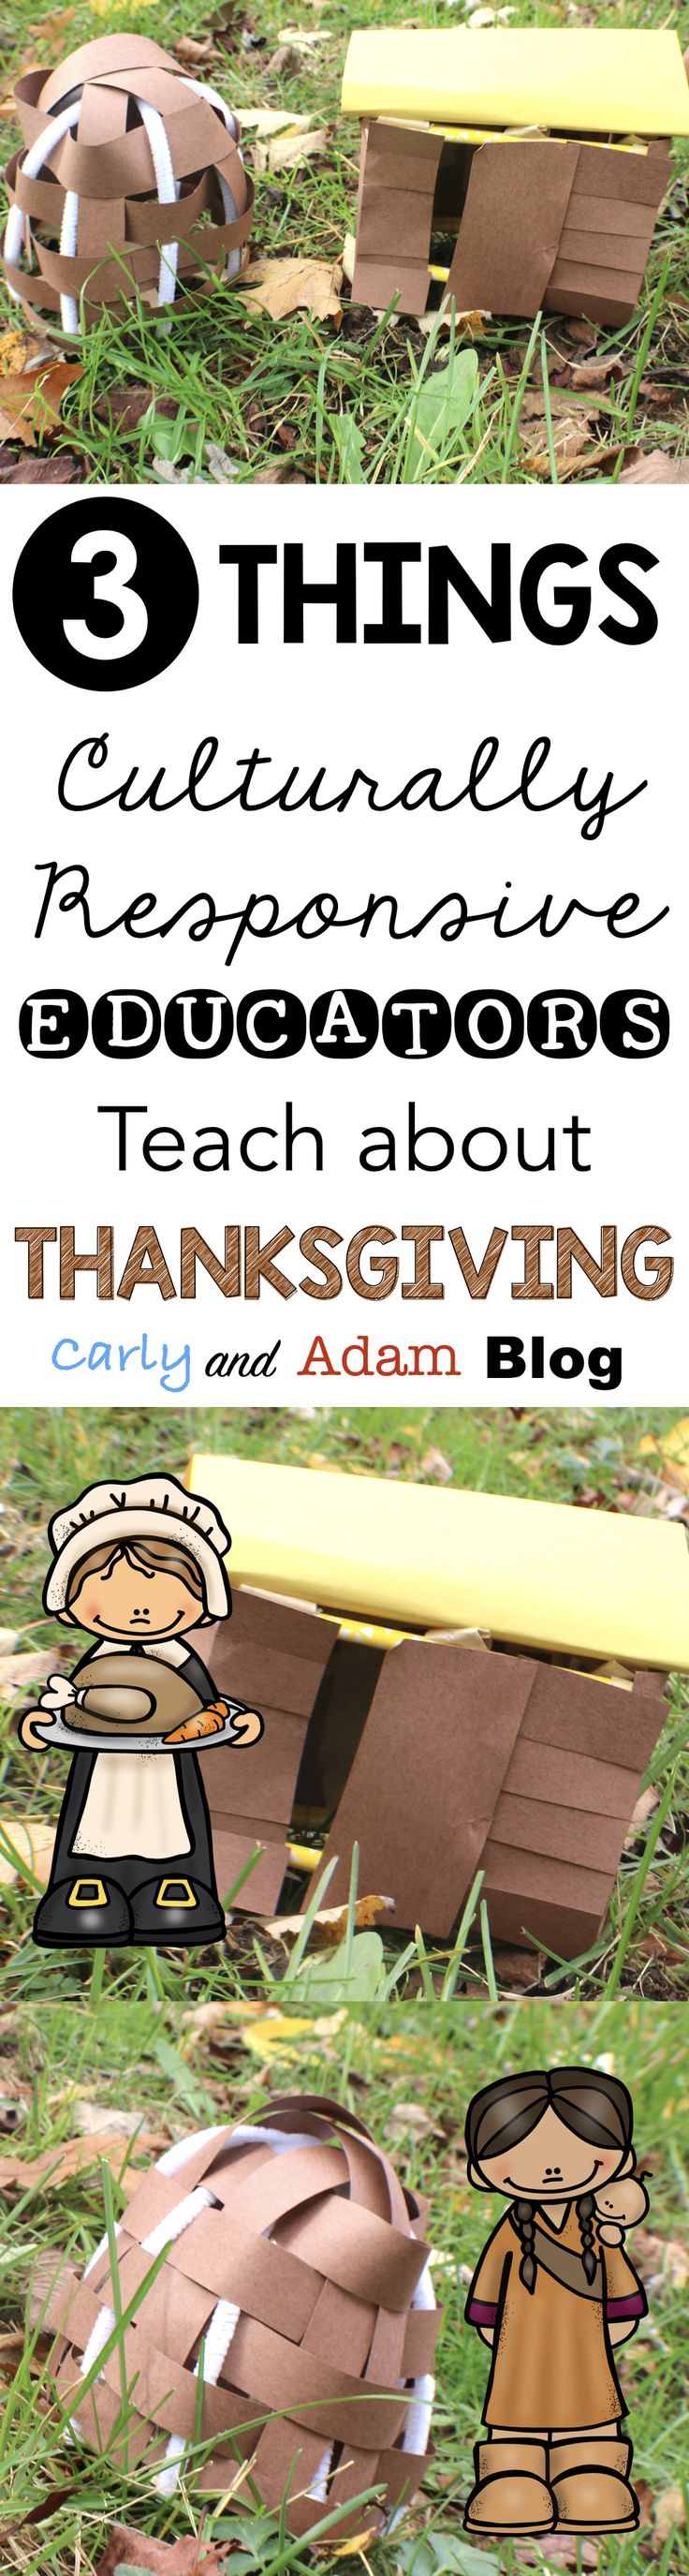 3 Things Culturally Responsive Educators Teach About Thanksgiving